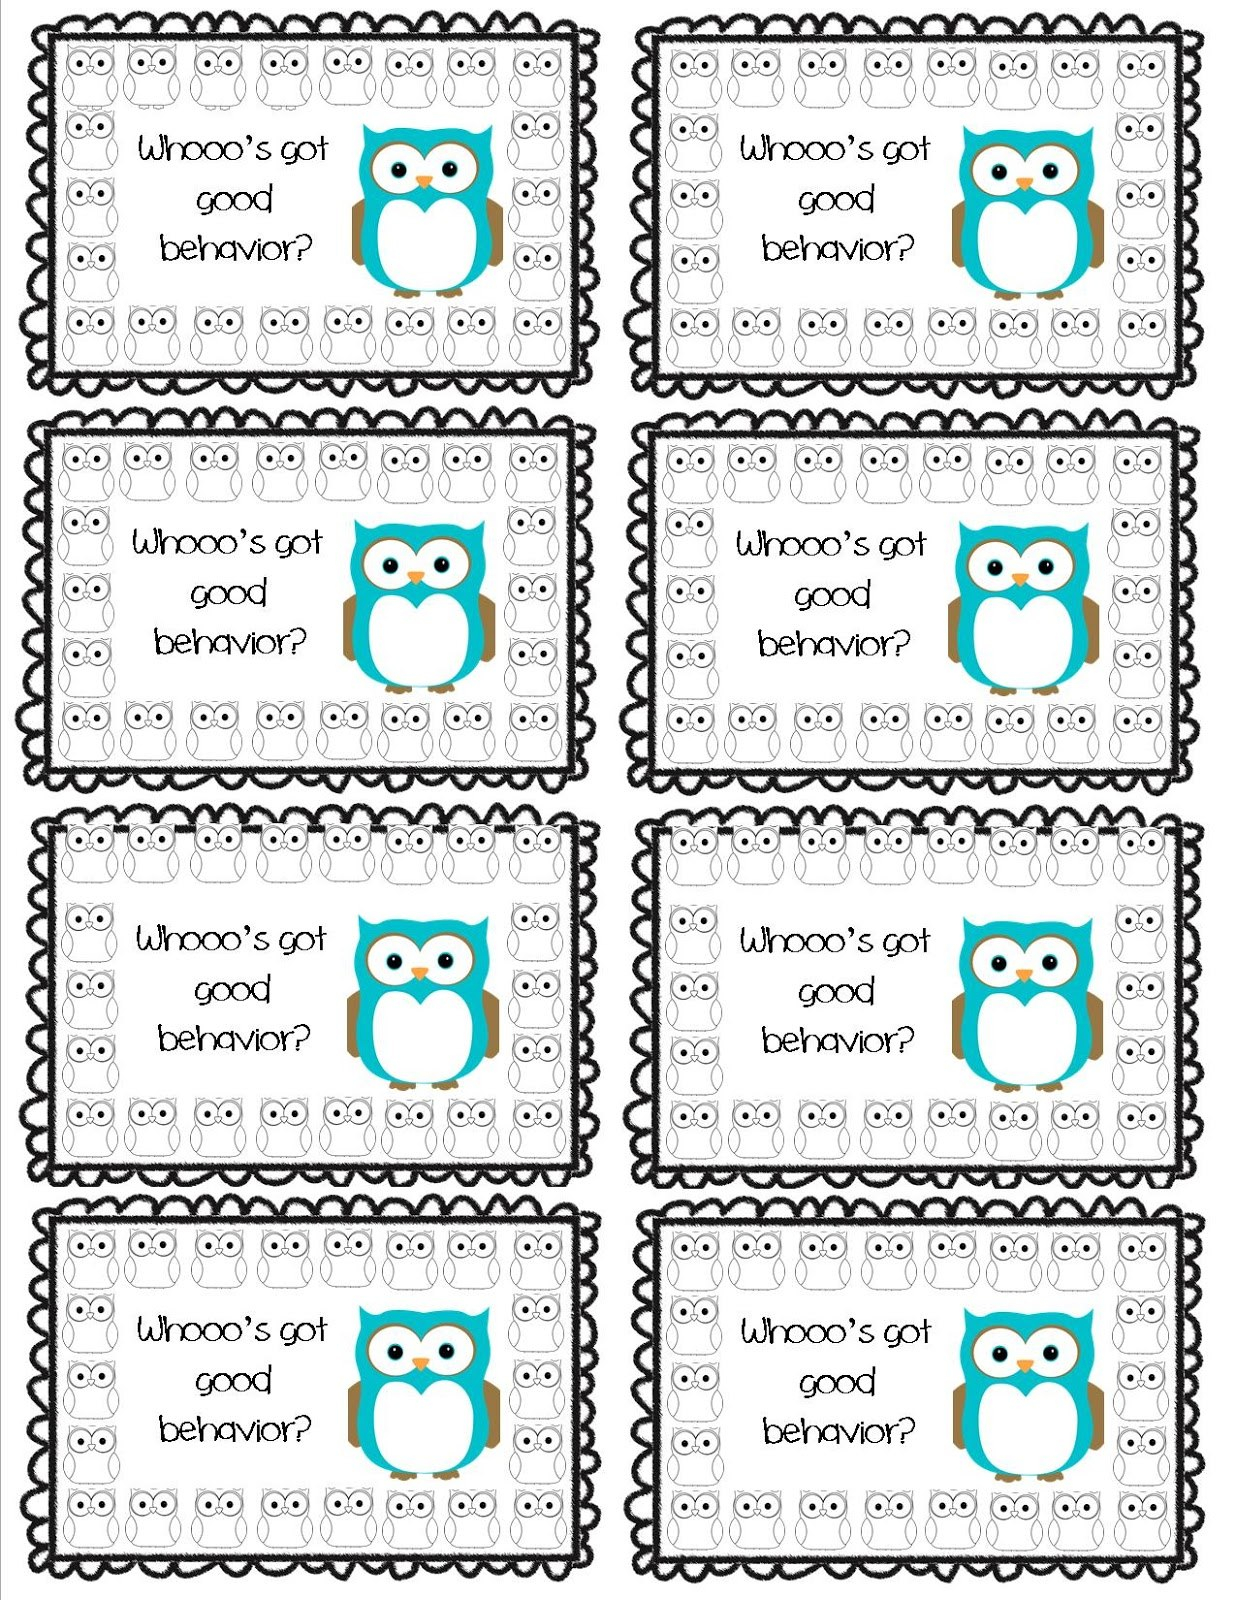 Nice Punch Cards Template Photos Punch Cards Template Free Idas Pertaining To Reward Punch Card Template